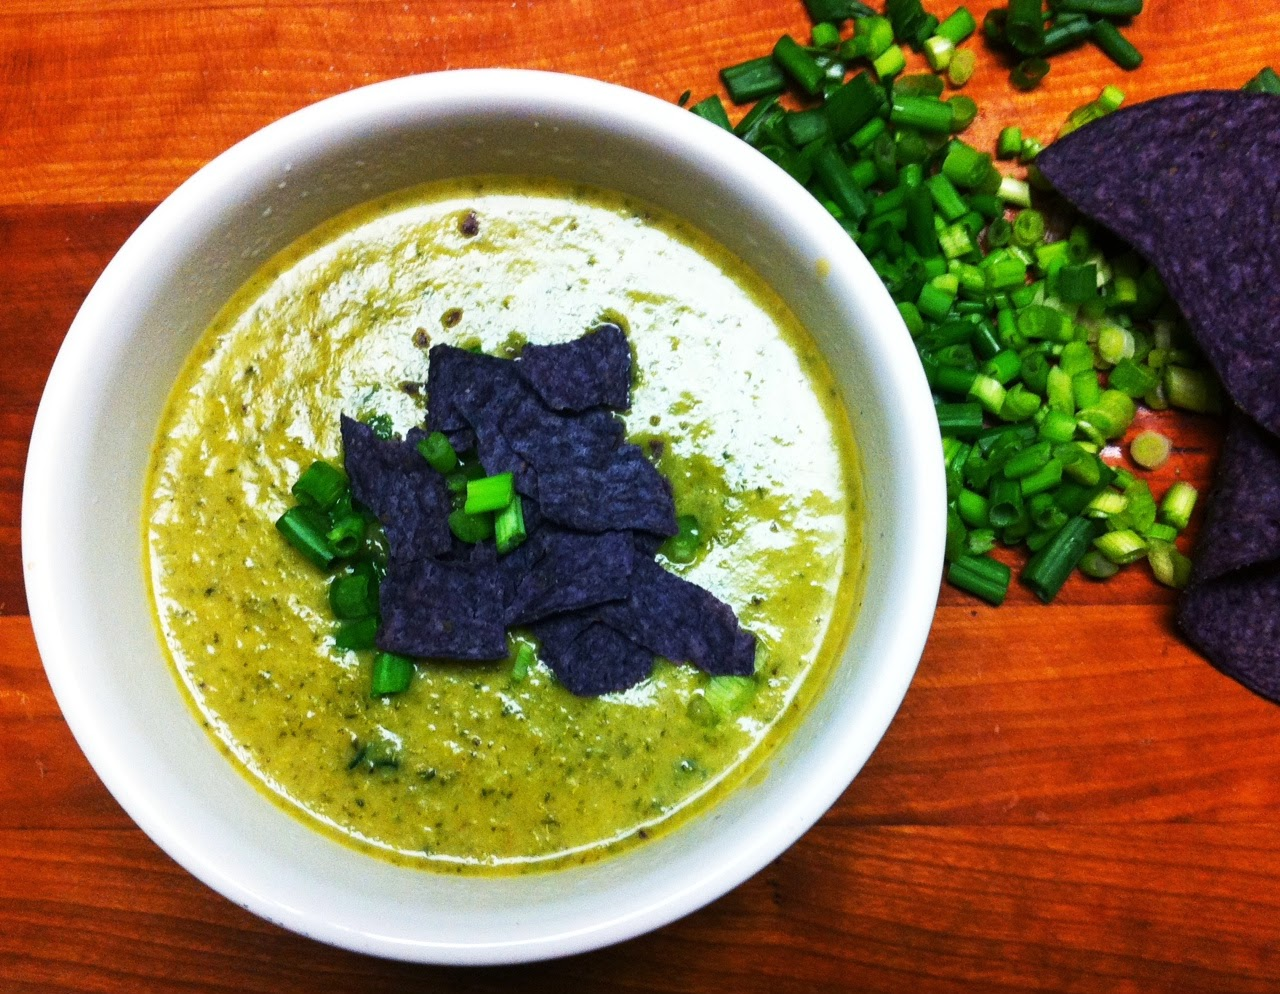 Grubarazzi: Simply Vegan Cream of Broccoli Soup